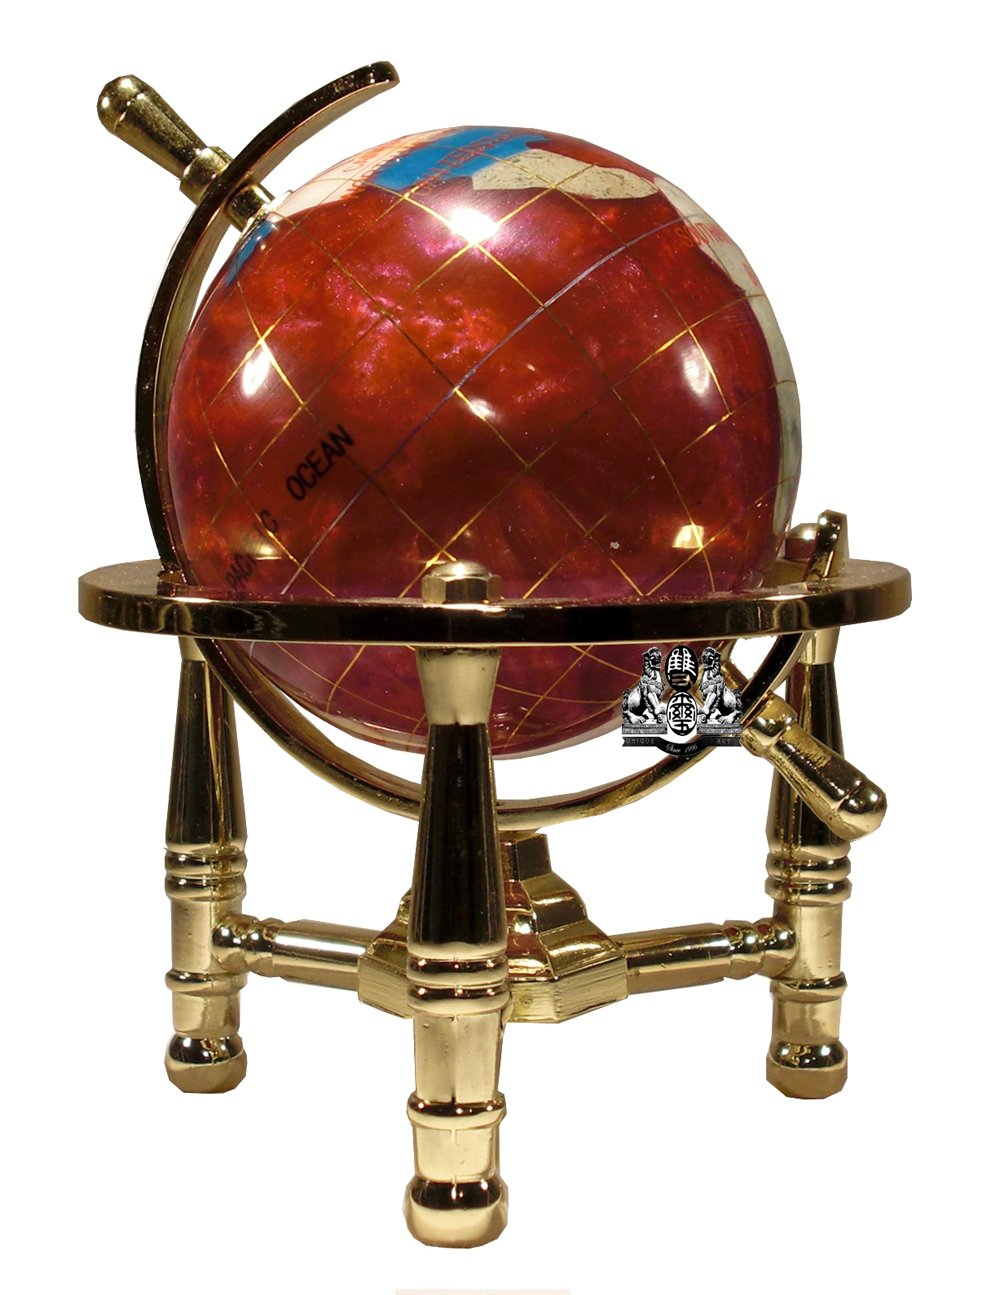 Unique Art 6-Inch Tall Pink Rubilite Pearl Swirl Ocean Mini Table Top Gemstone World Globe with Gold Tripod American Dwelling Group 80-GT-PINK-GOLD